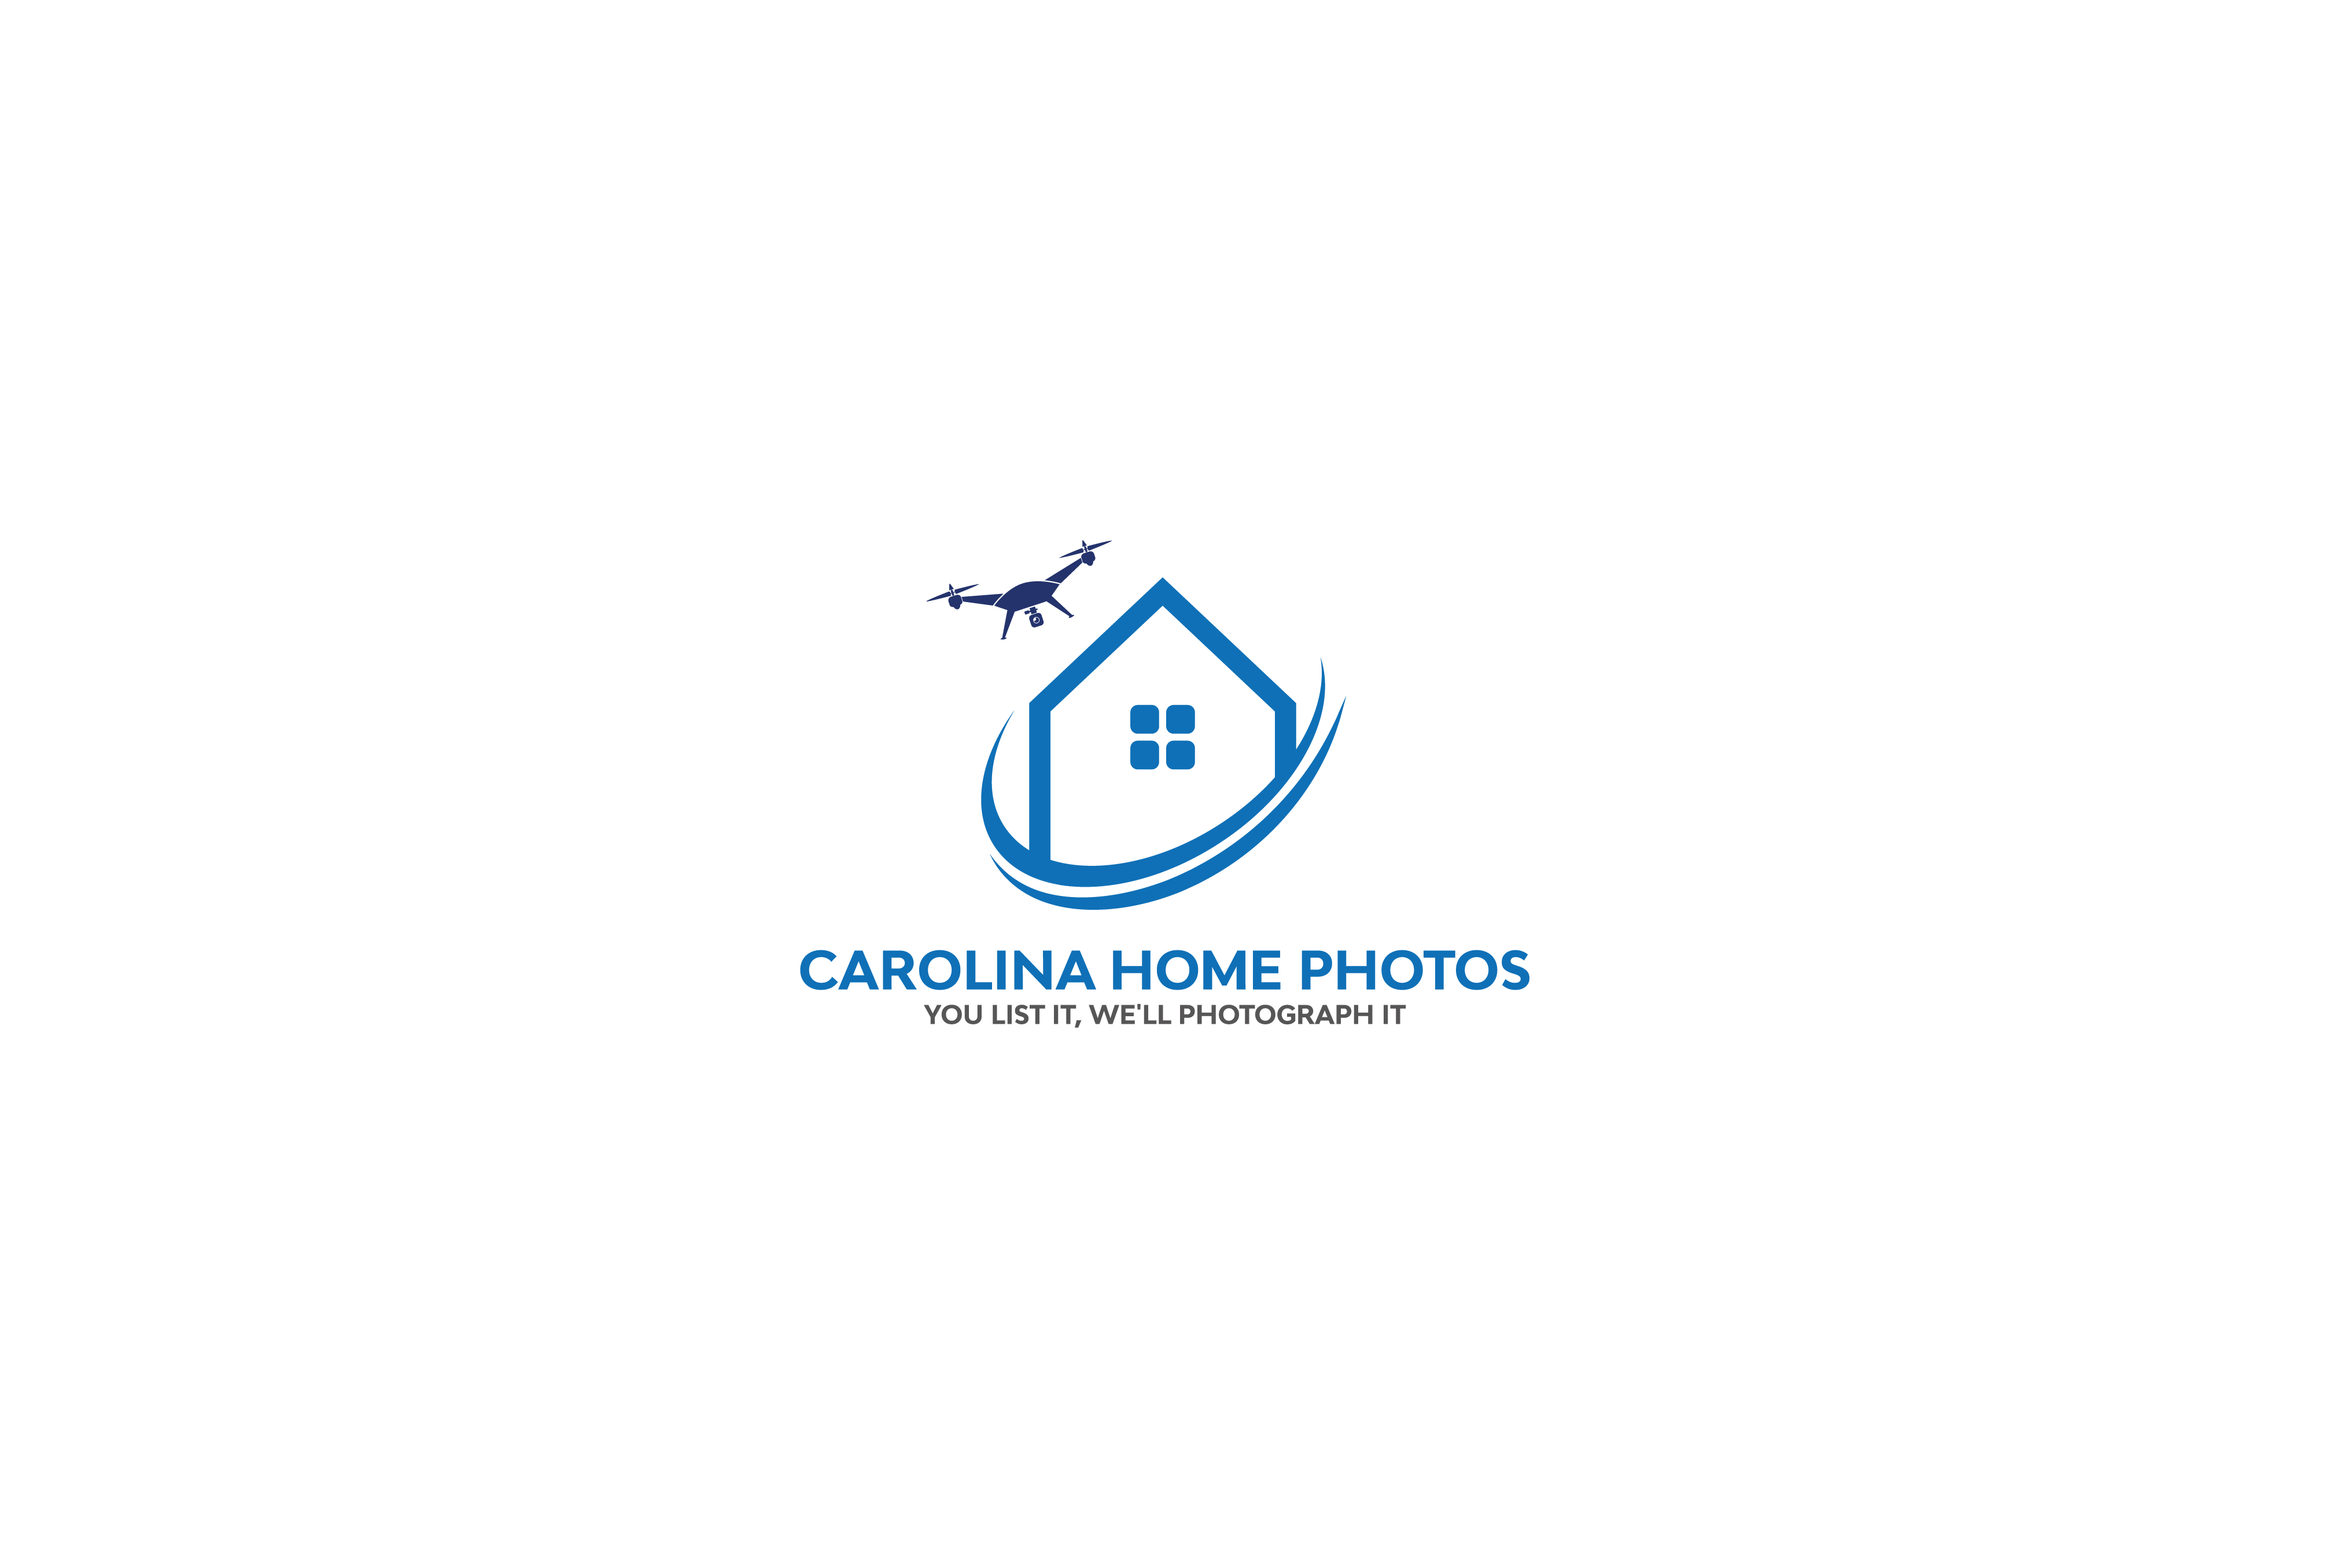 Carolina Home Photos floor plan in Albemarle Charlotte Concord Kannapolis Locust Salisbury Camden Fort Mill Kershaw Lancaster Rock Hill Tega Cay York